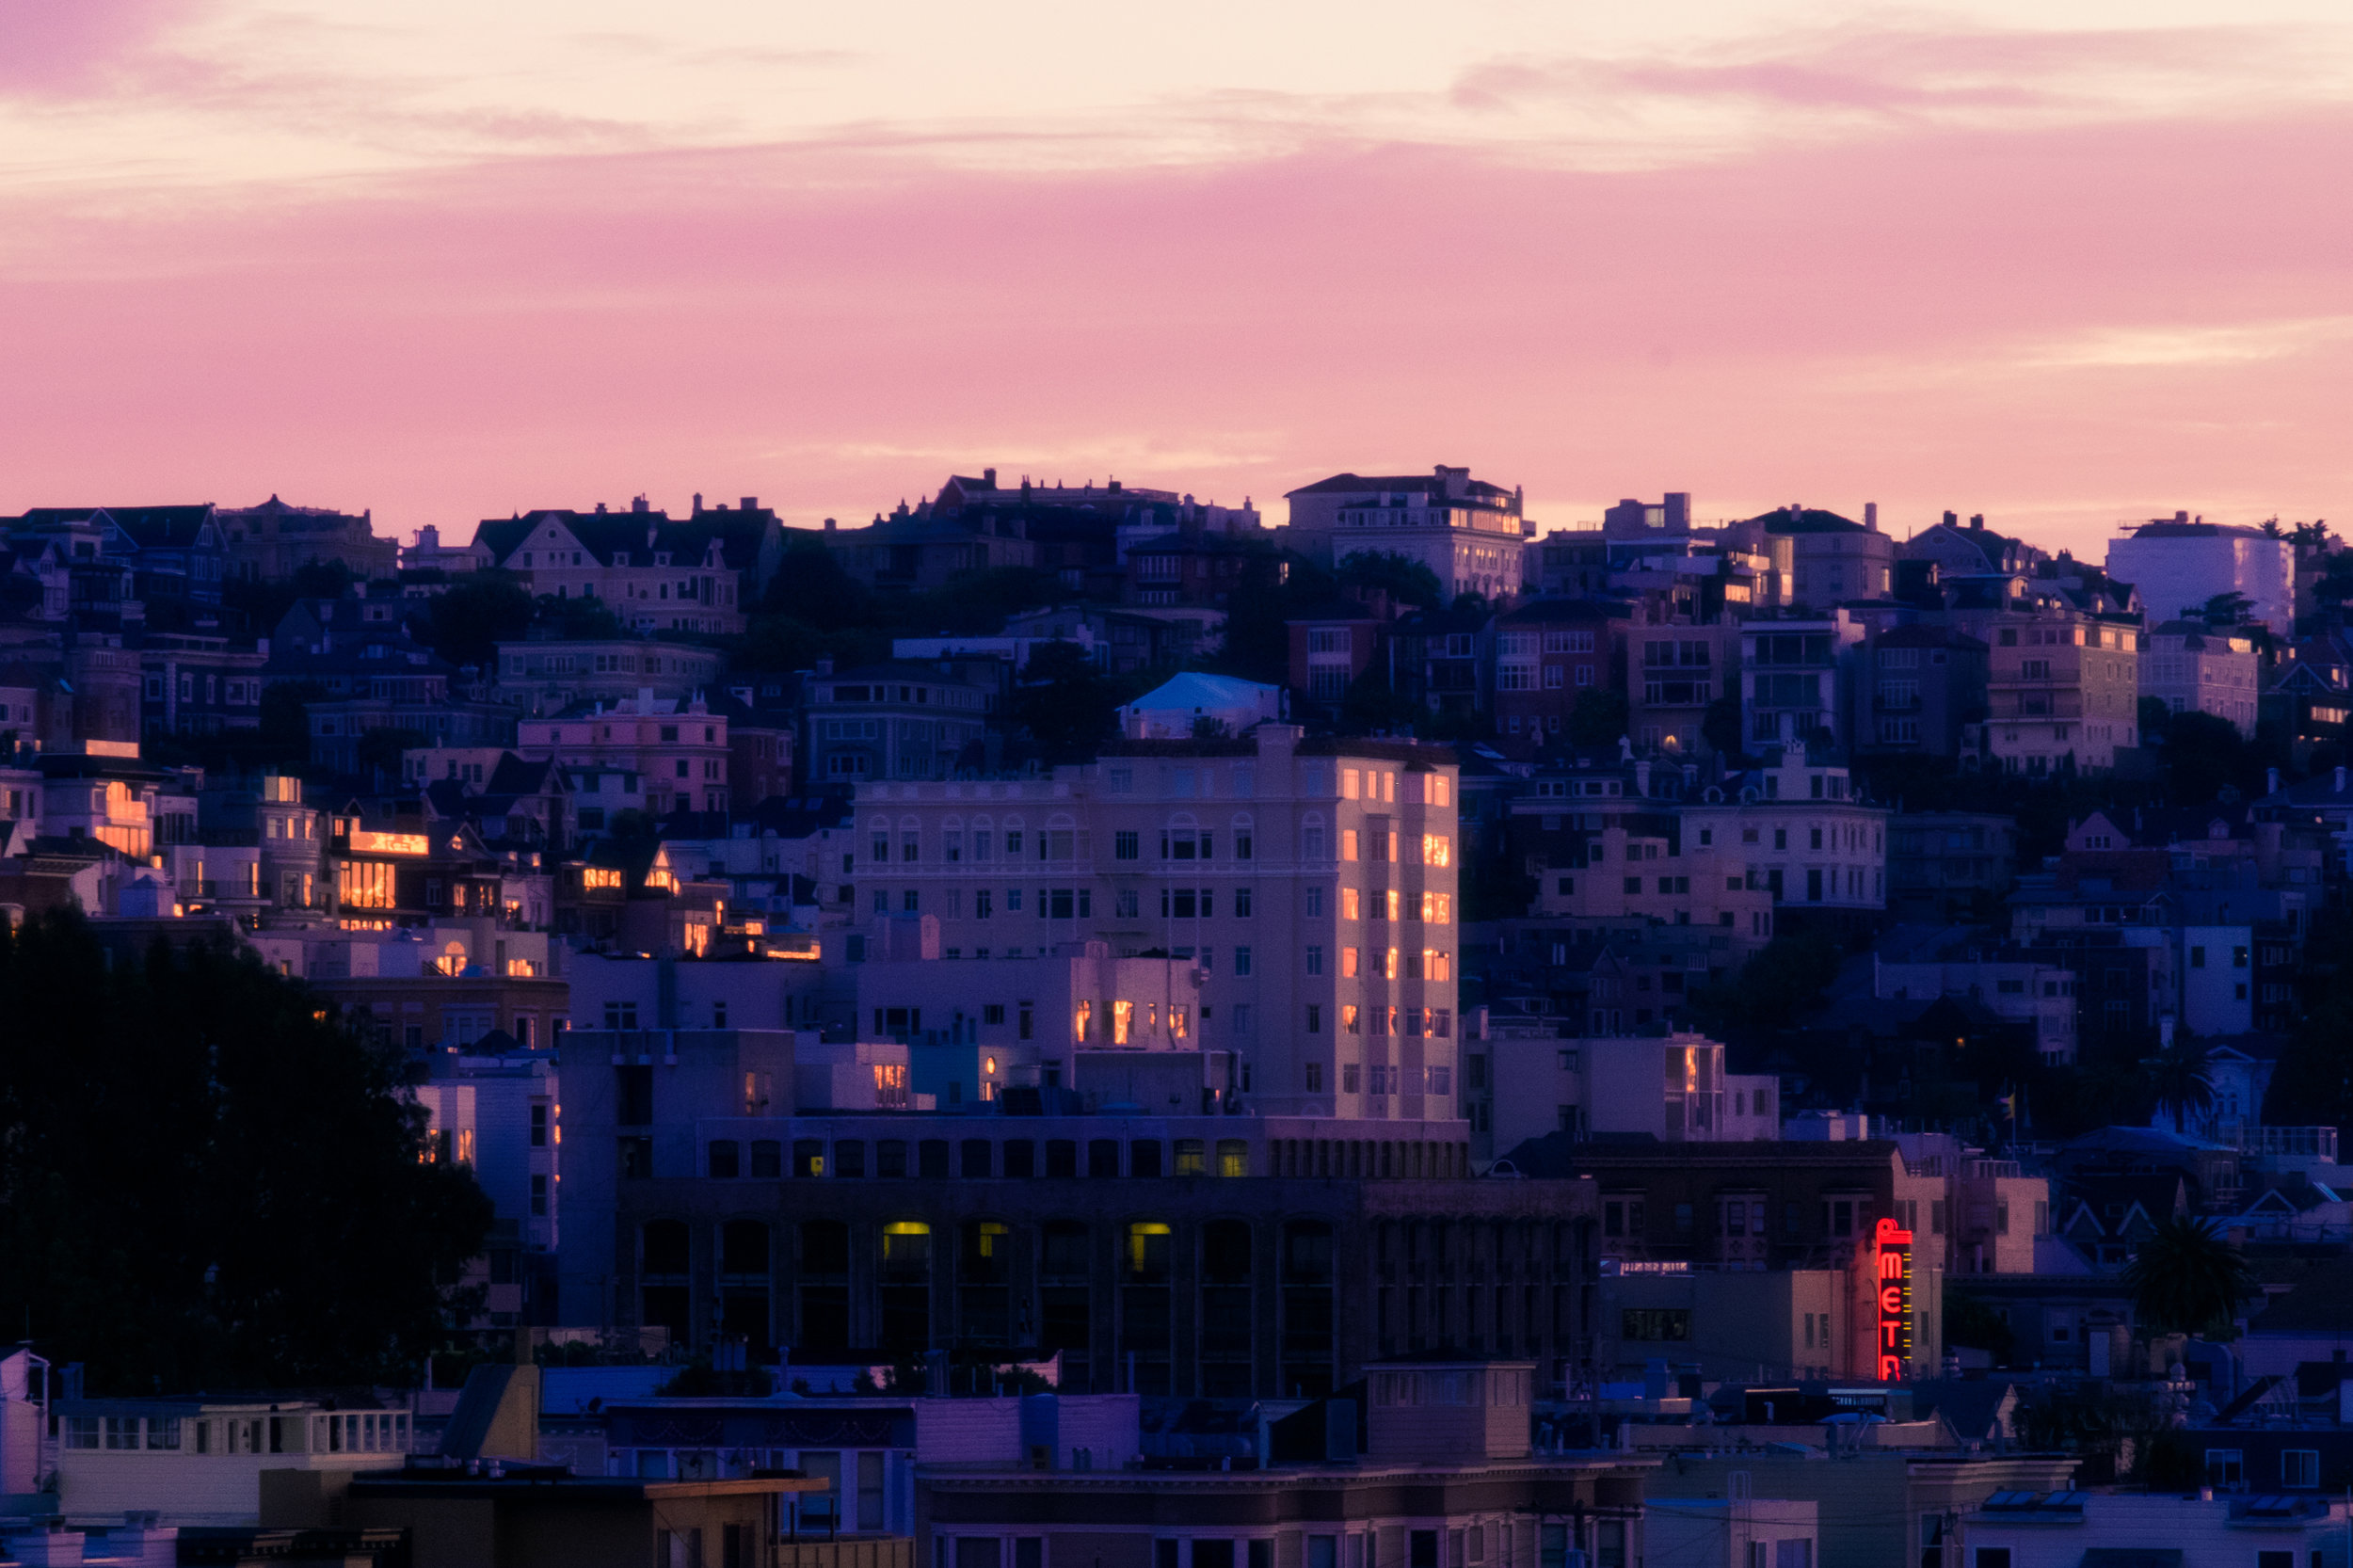 San-Francisco-Sunset.jpg